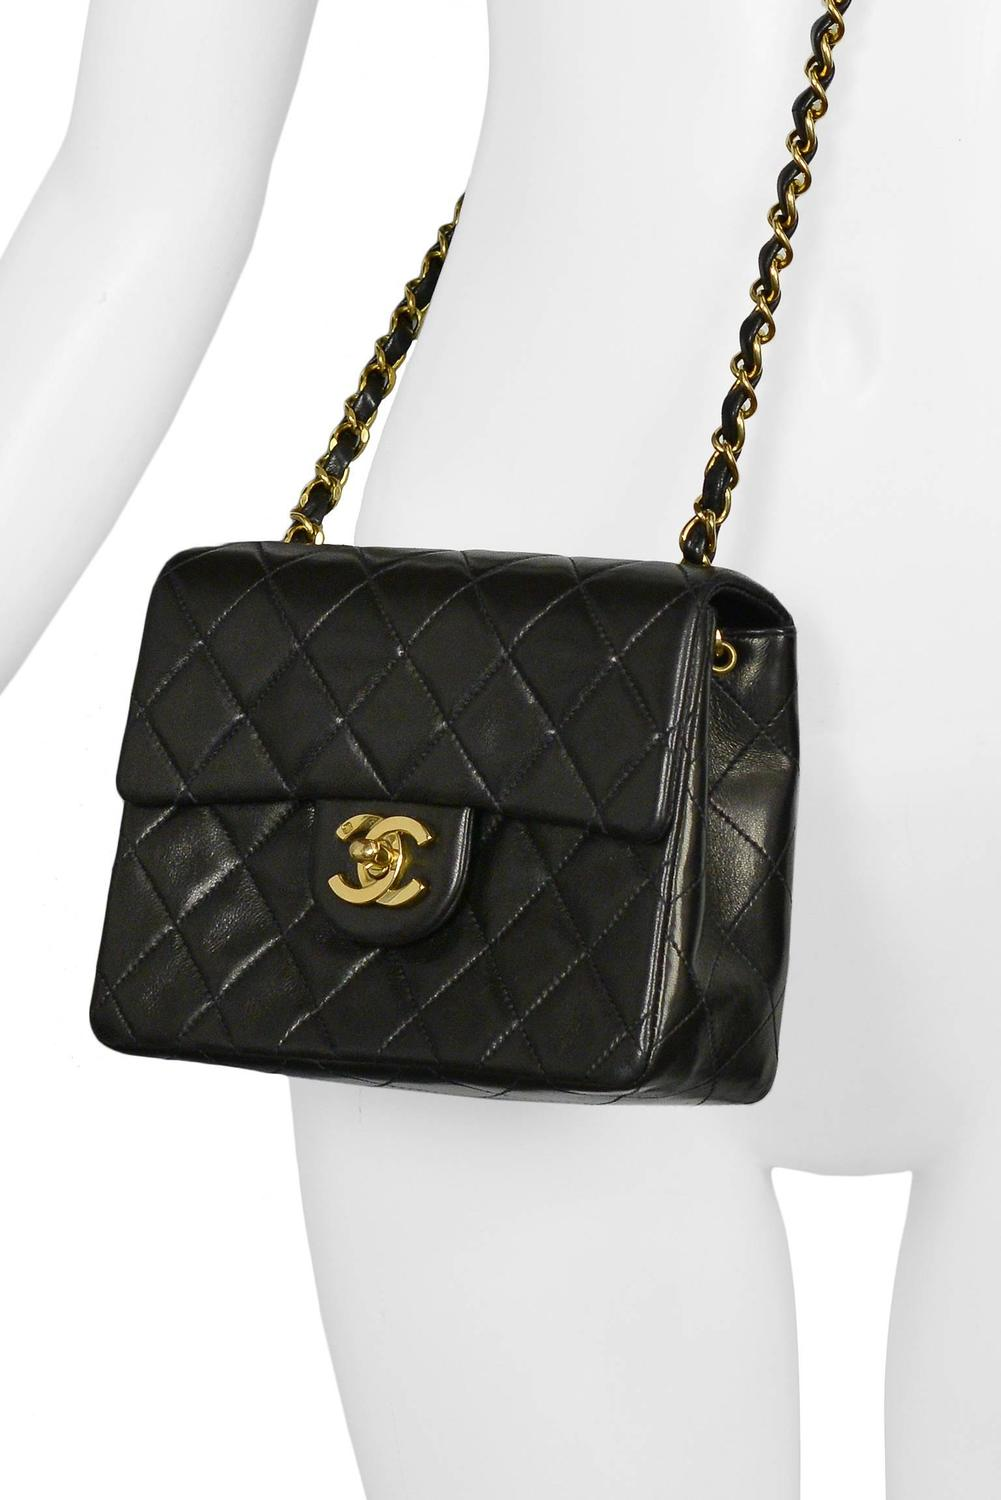 4f605eb82890b6 Vintage Chanel Classic Mini Quilted Black Leather Shoulder Bag at 1stdibs